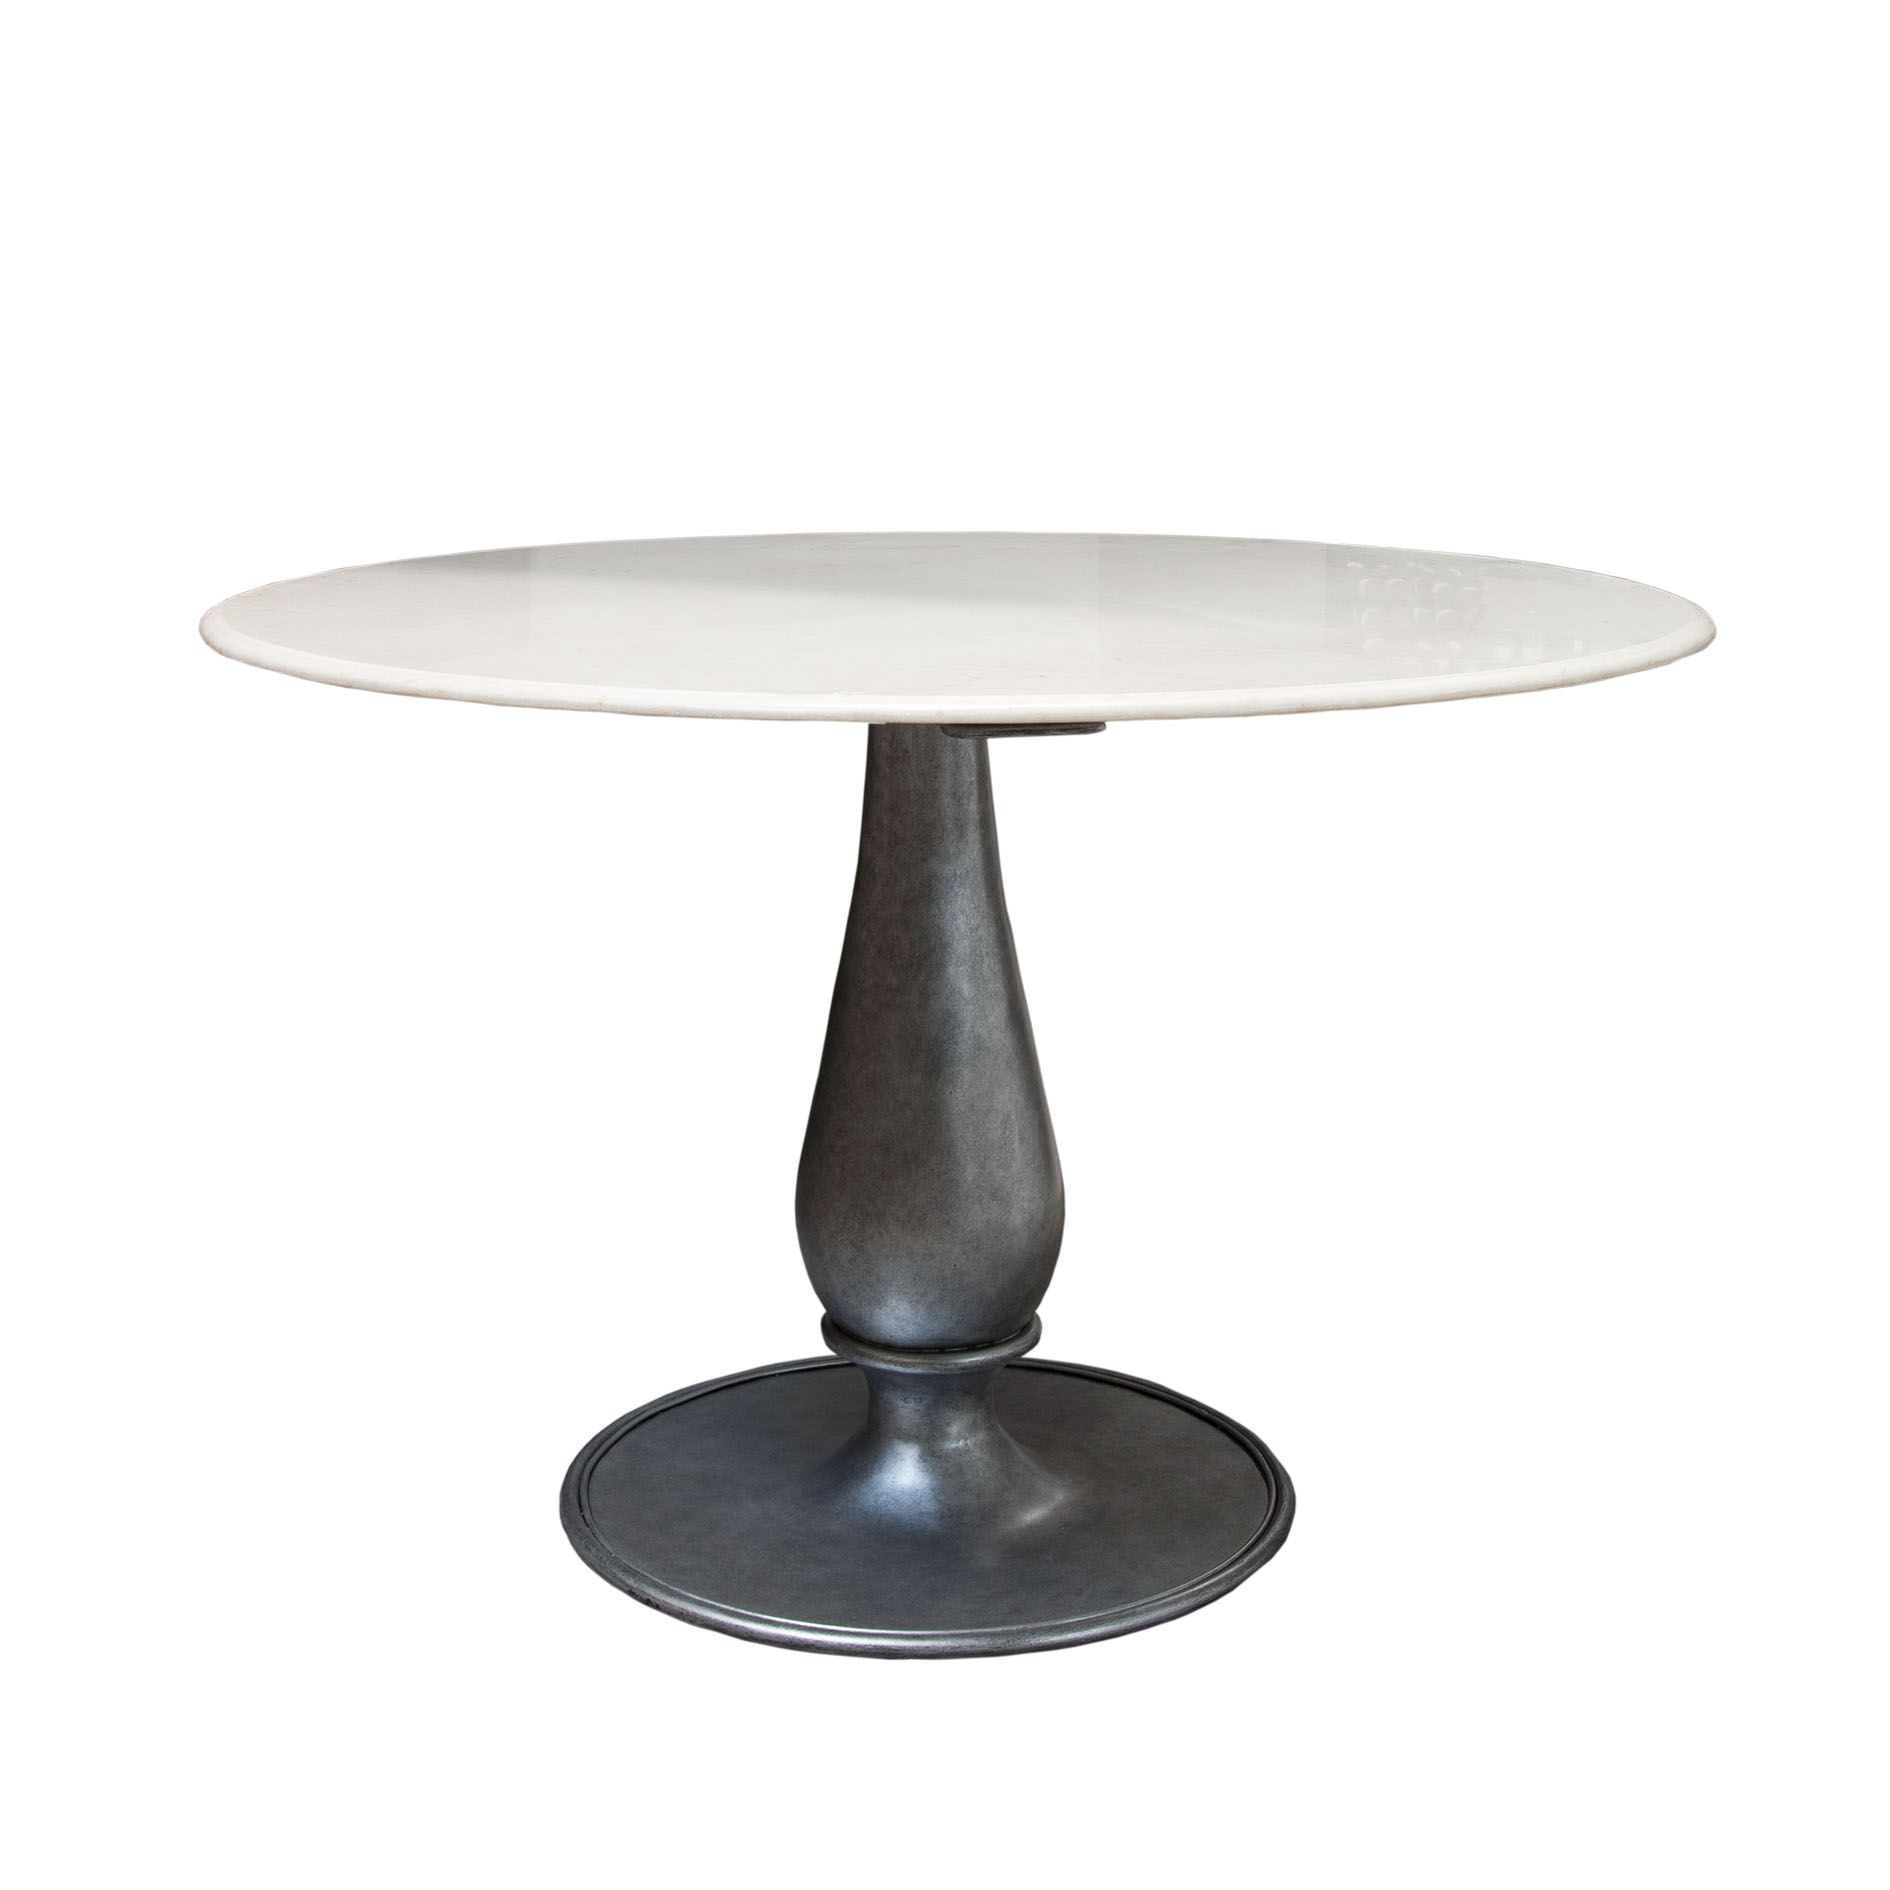 38fd35b44 TABLE RED. COPA PL. Viej C   MARBLE 115 CM by Becara